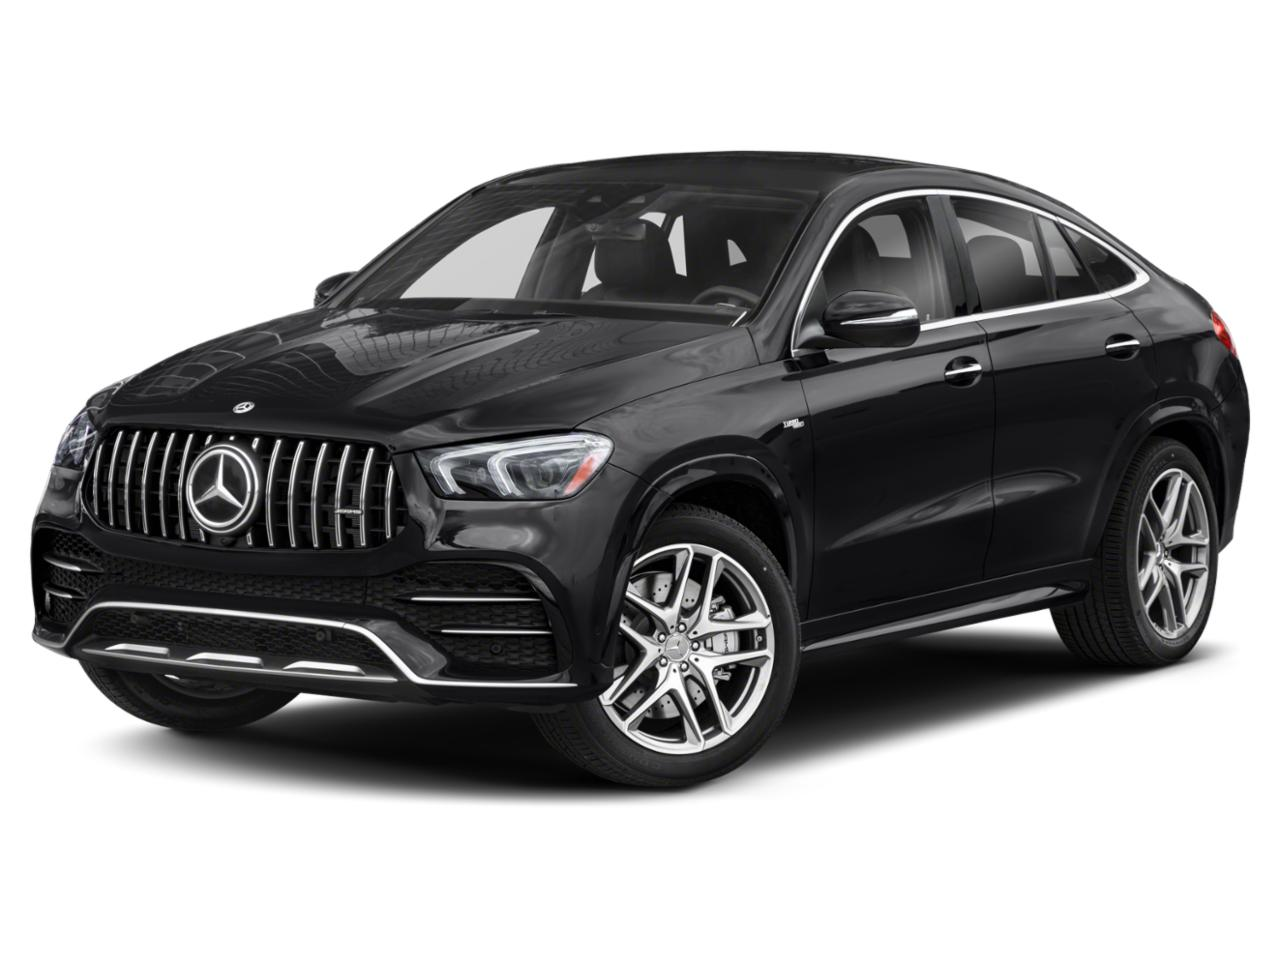 2021 Mercedes-Benz GLE Vehicle Photo in Colorado Springs, CO 80905